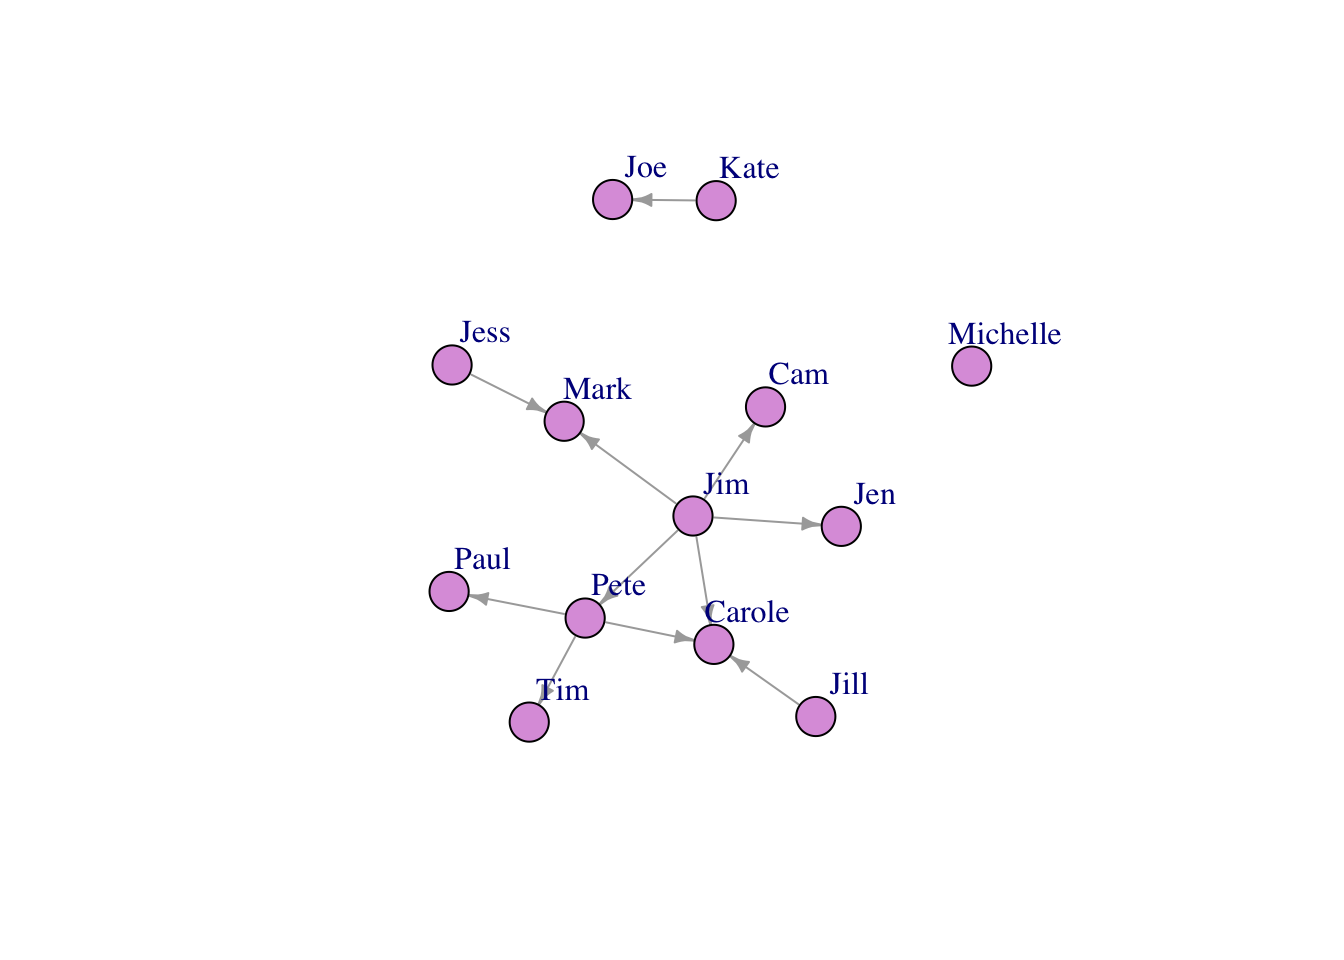 Visualizing and Describing Networks